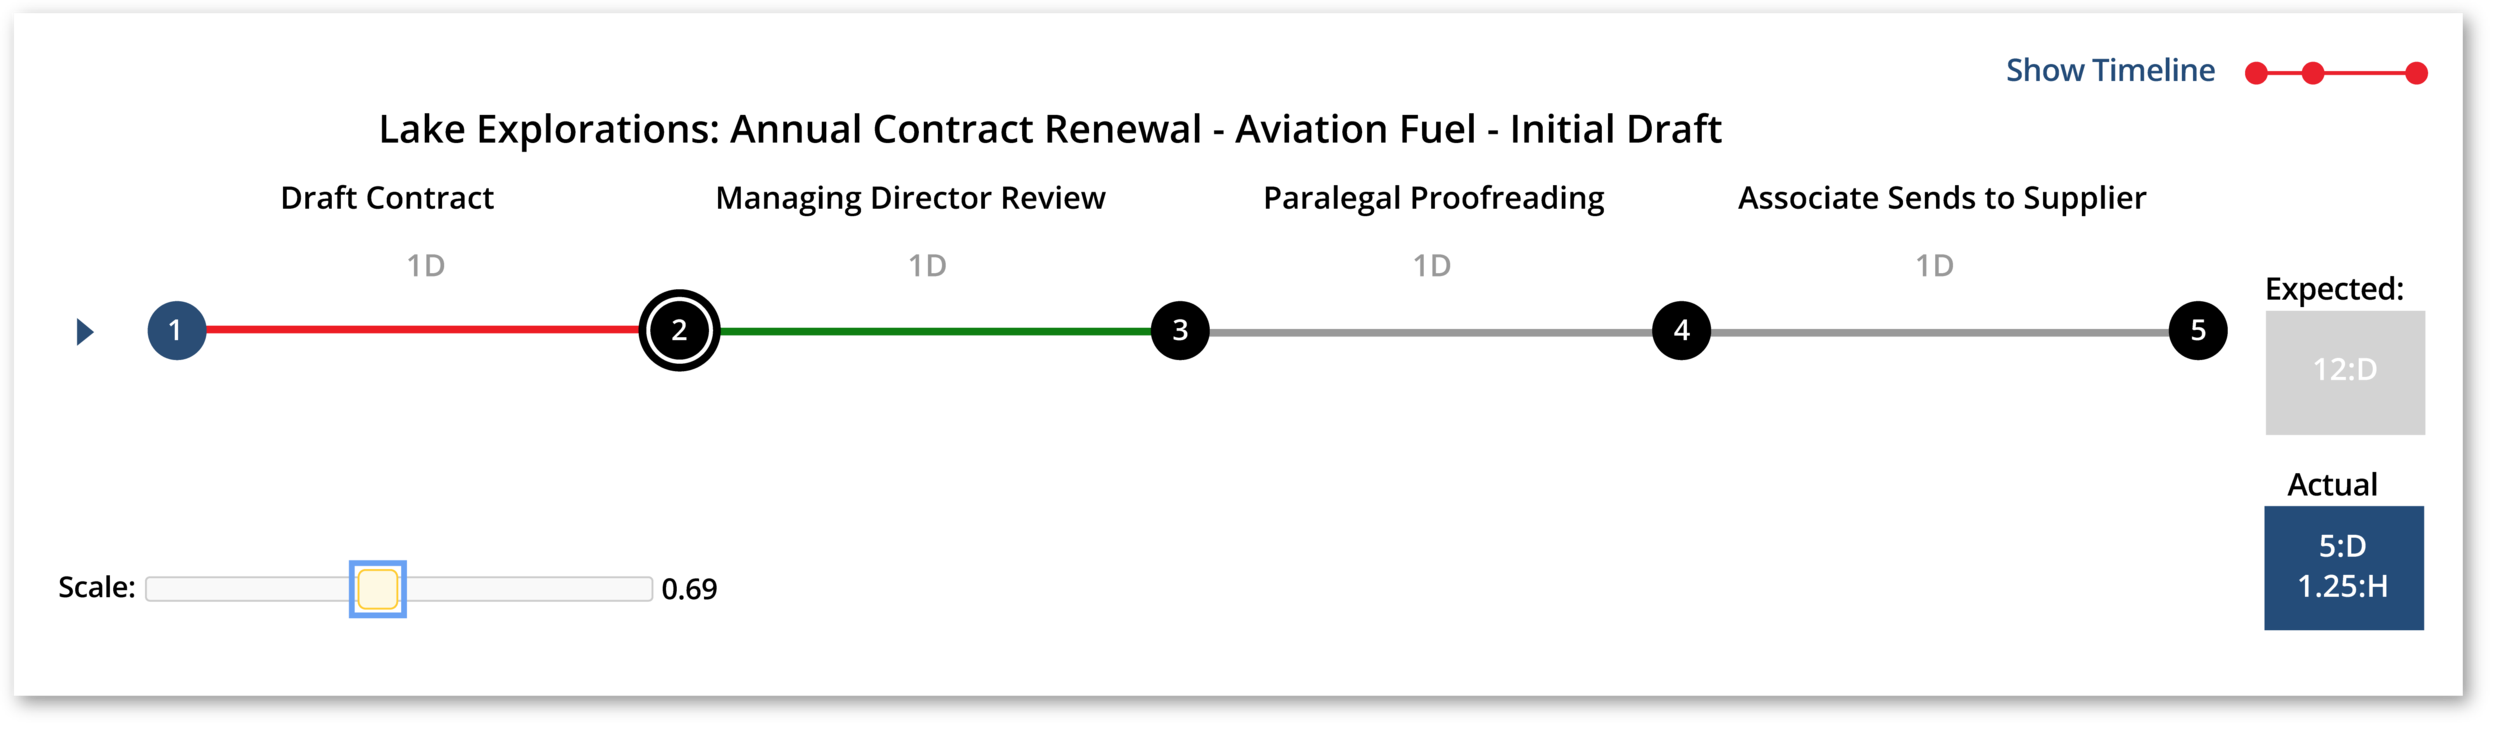 mot-r contract renewal w ds Apr 2 2019 v1.0-17.png